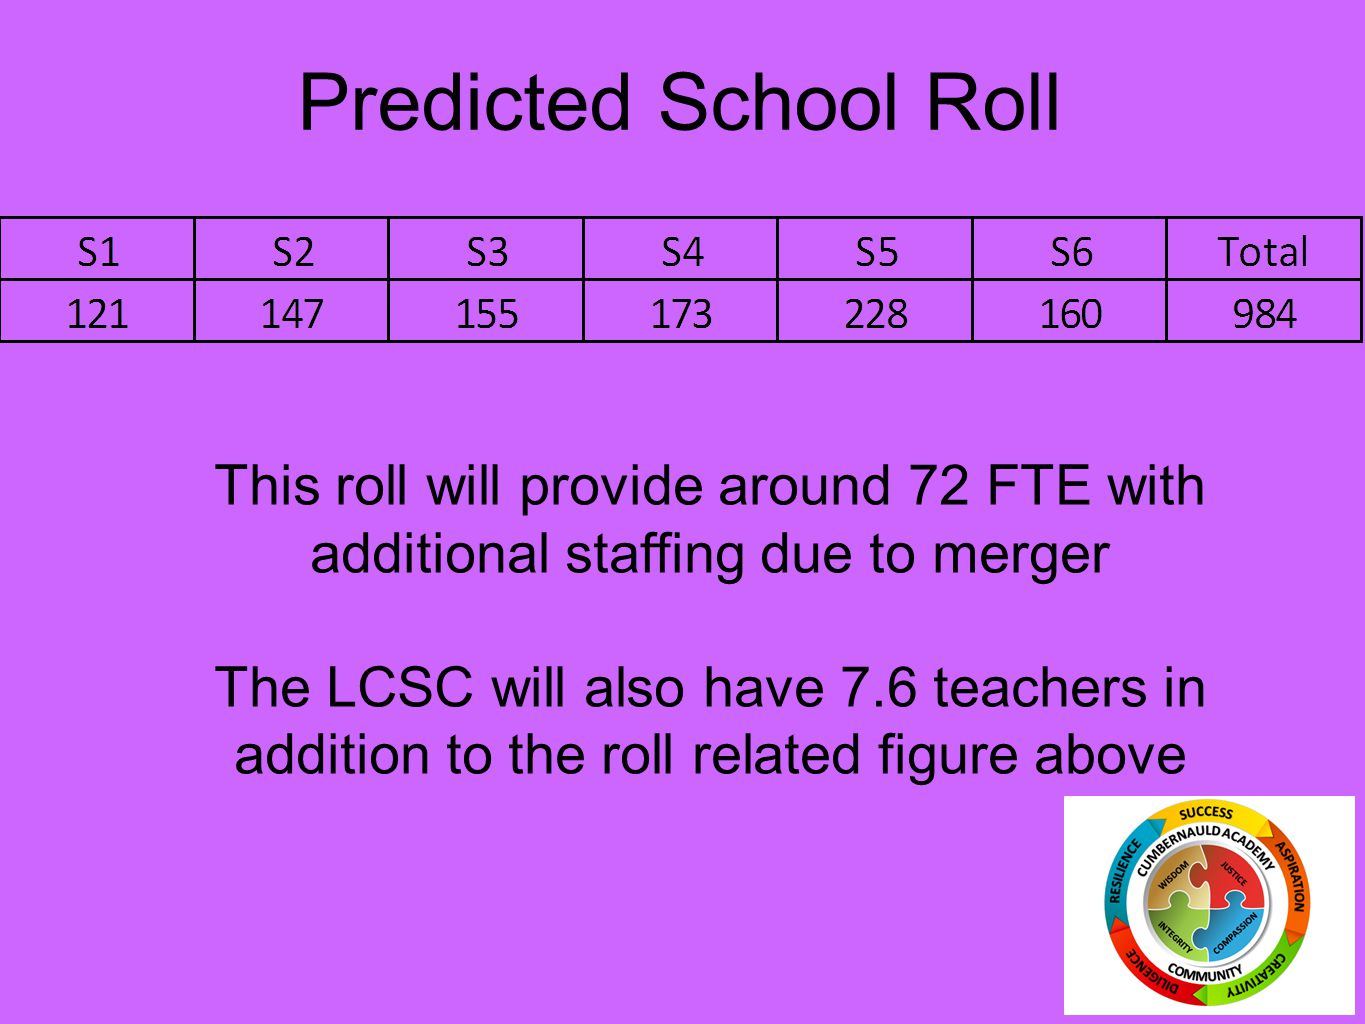 Predicted School Roll This roll will provide around 72 FTE with additional staffing due to merger.